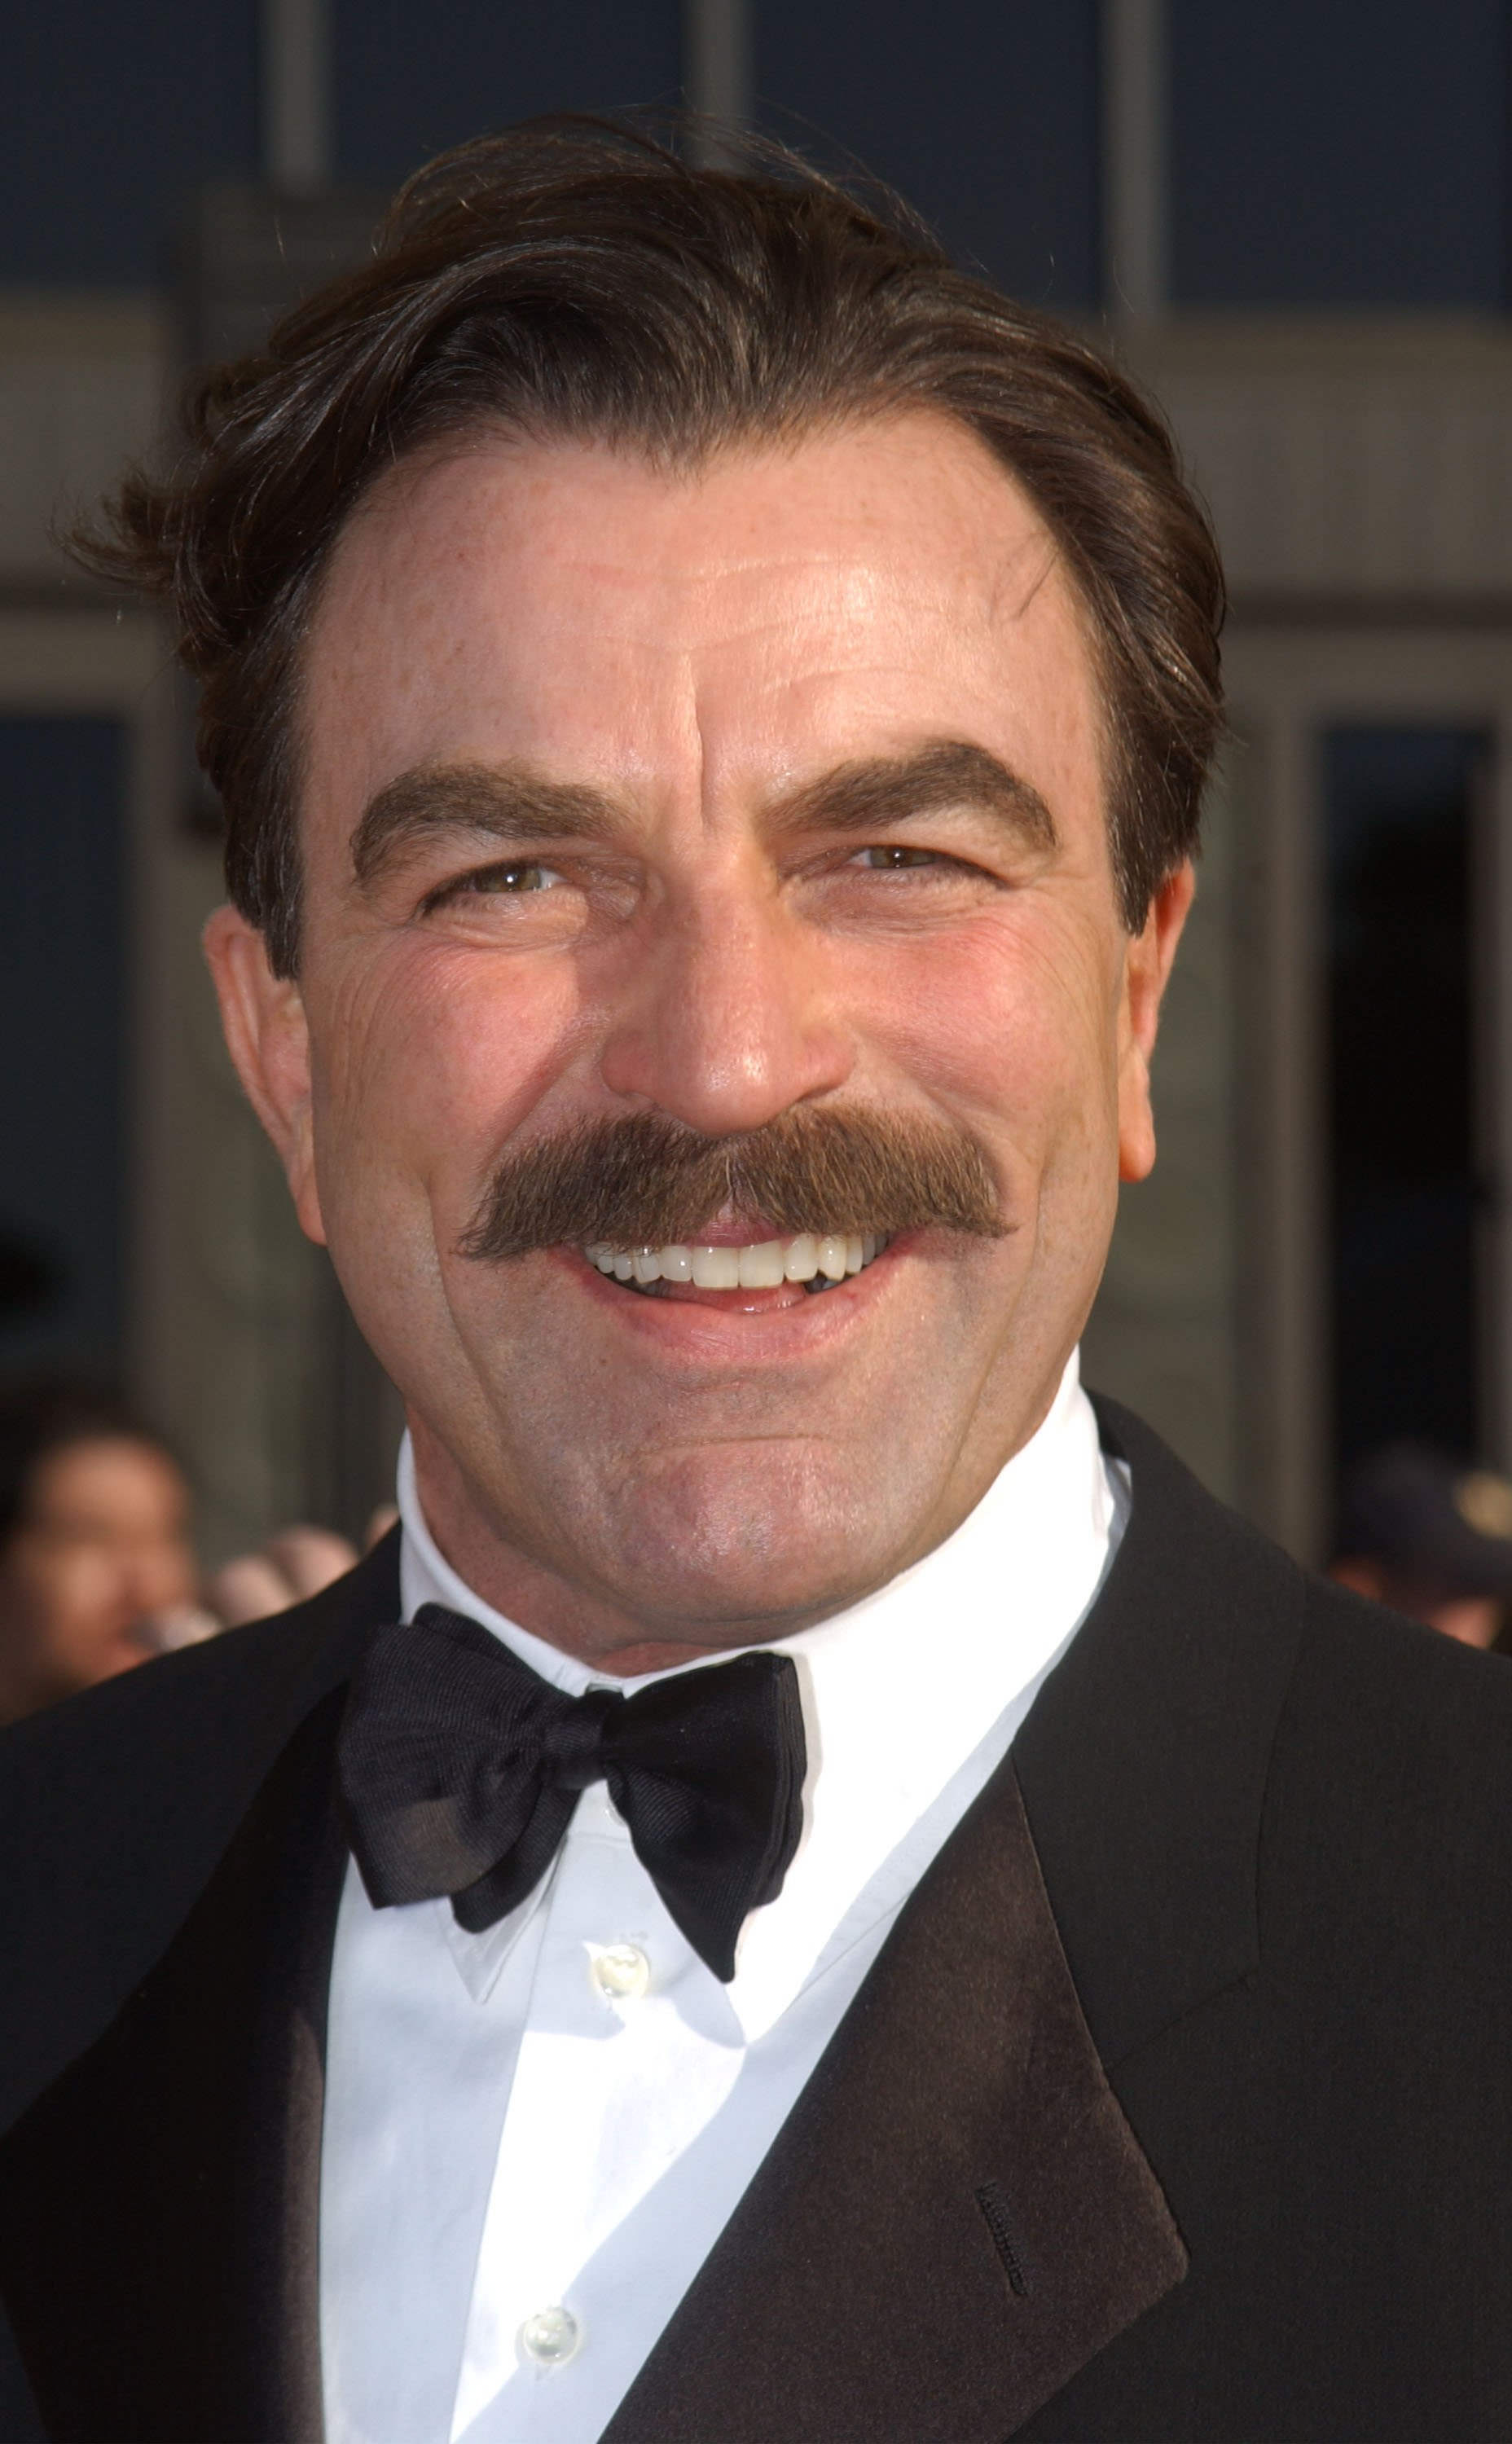 Tom Selleck attends the 8th Annual Screen Actors Guild Awards at the Shrine Auditorium March 10, 2002 | Photo: GettyImages